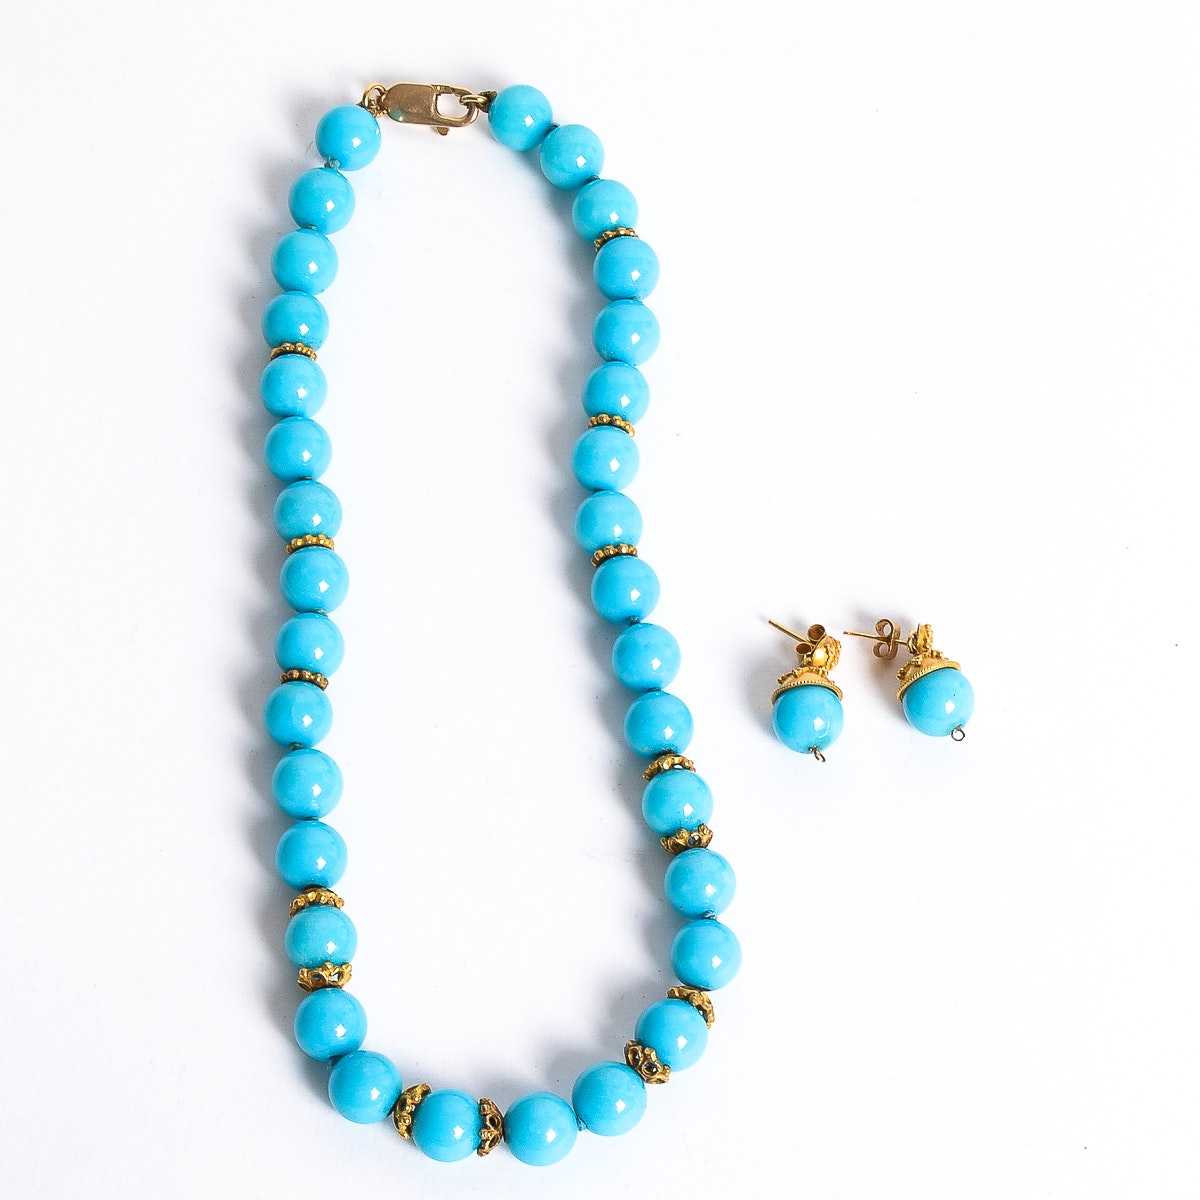 14K Yellow Gold and Teal Jade Beaded Demi Parure